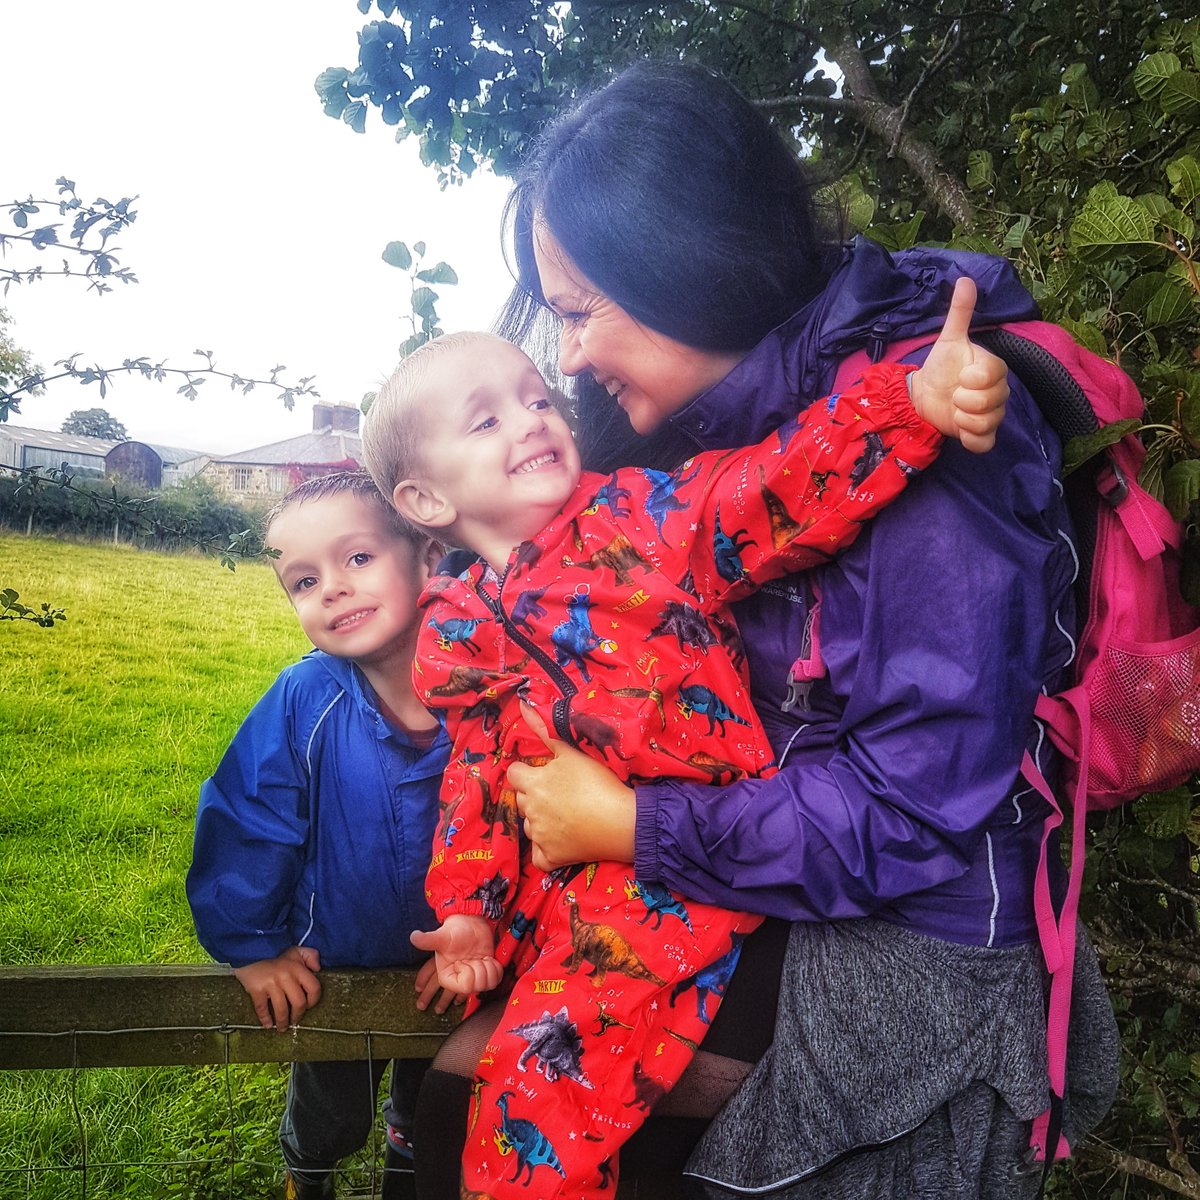 The thoroughly modern mummy: why there is no such thing as work/life balance http://dld.bz/hQ8HM #worklifebalance #worklifeblend #modernmummypic.twitter.com/nu42sJGEcg